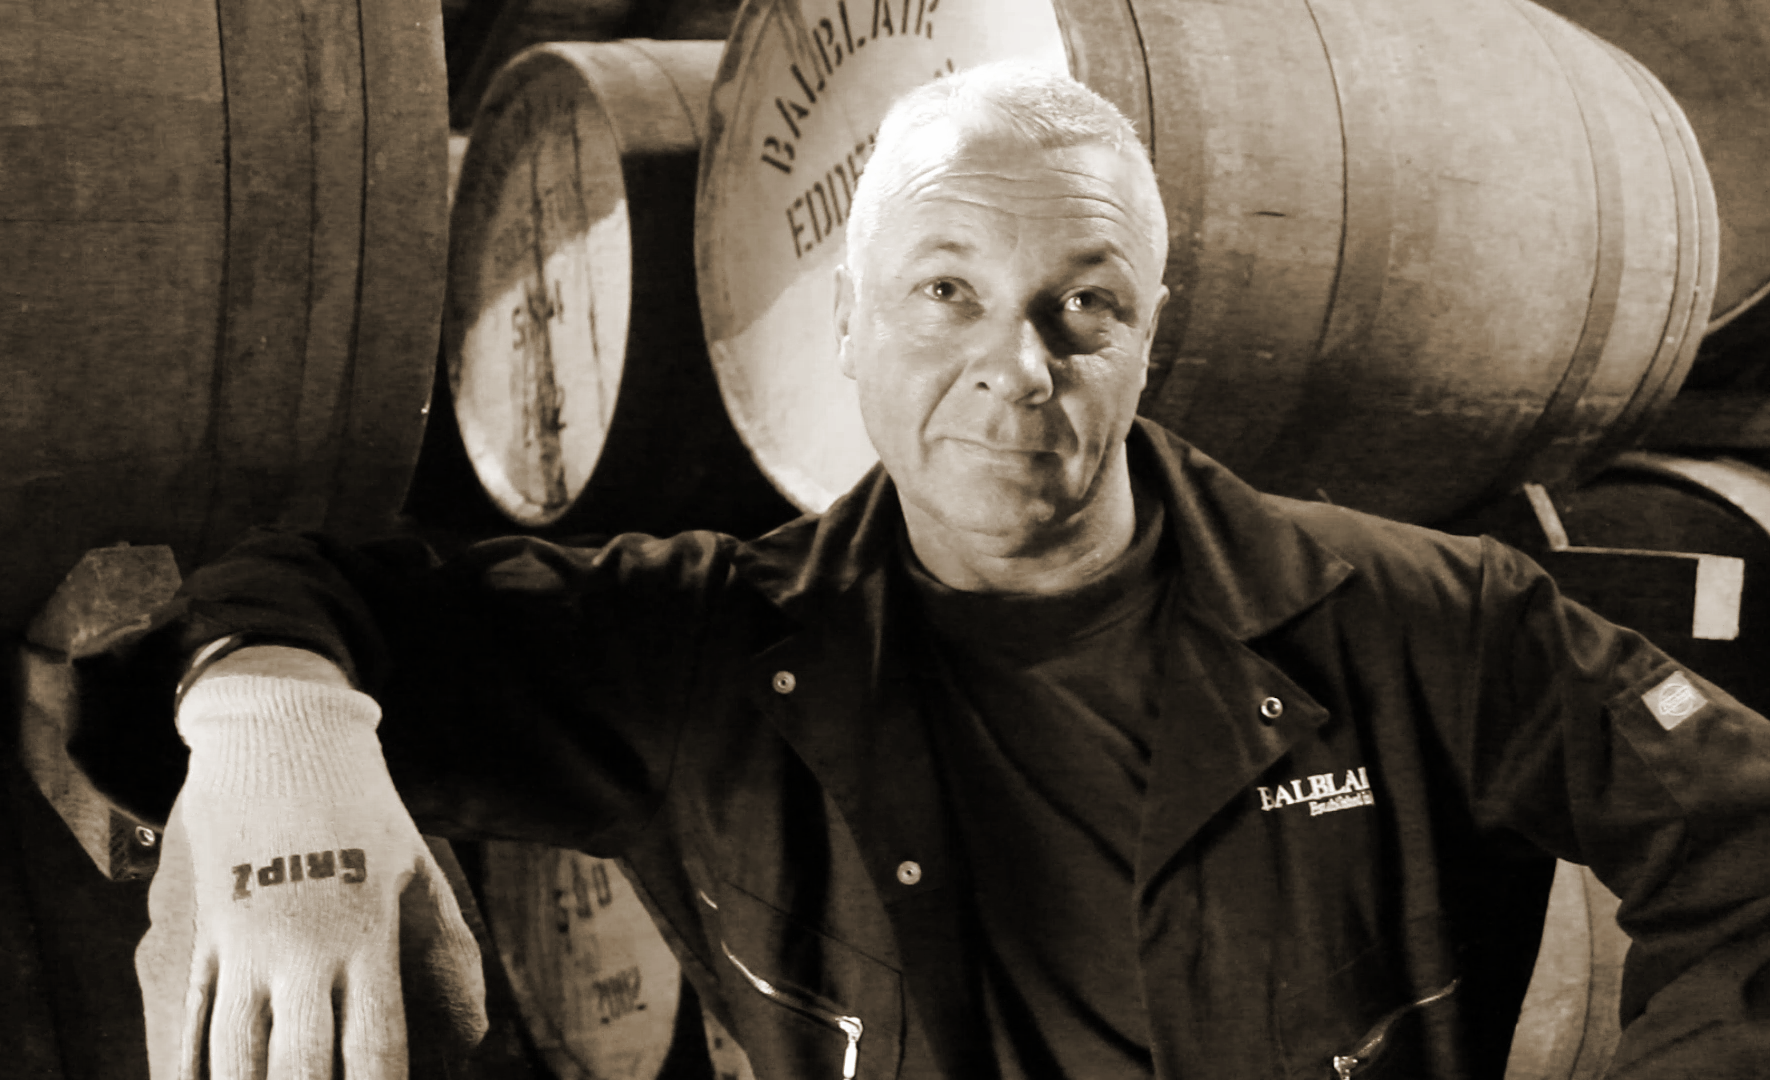 Our Whisky Photo of the Week honors Martin Macdonald of Scotland's Balblair Distillery, who celebrated his 40th anniversary on the job this week. You can meet Martin and the rest of the Balblair team in our WhiskyCast HD story shot at Balblair in 2011.